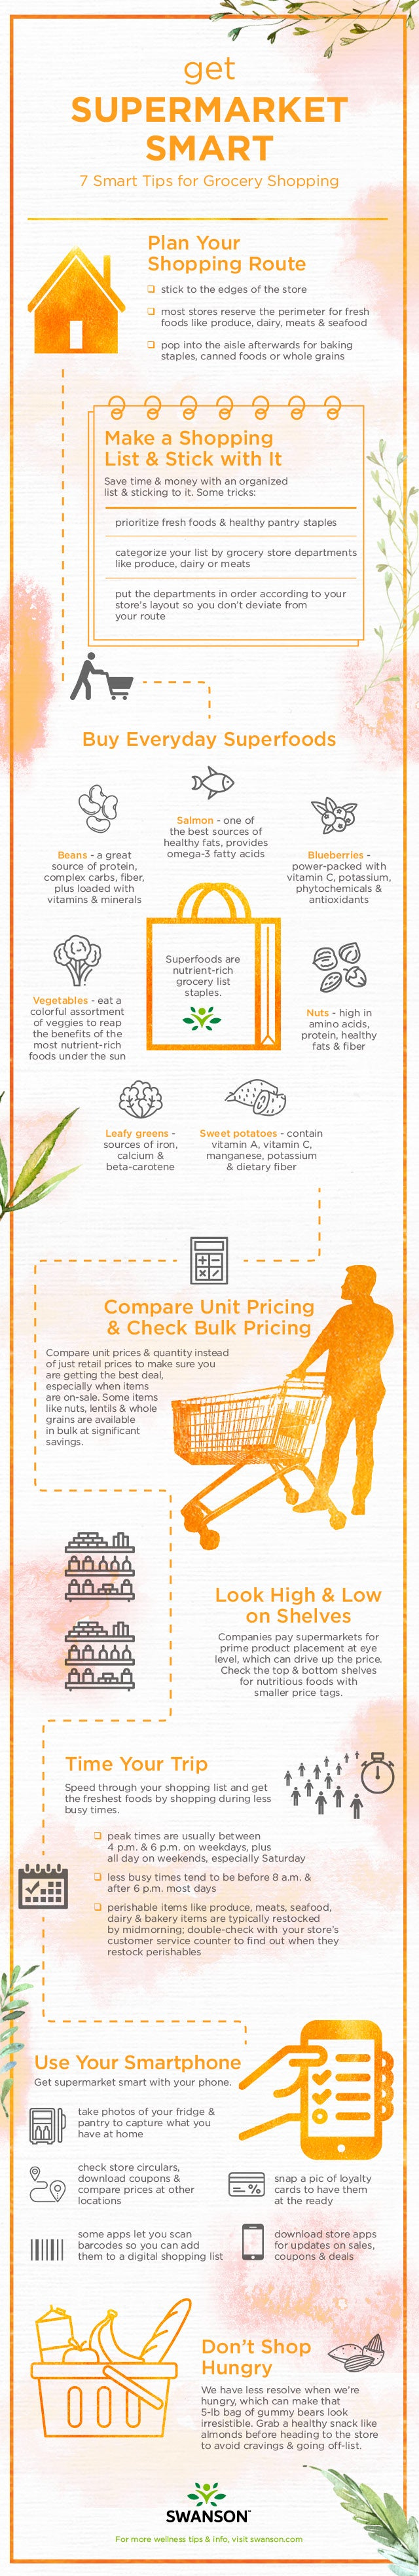 Get Supermarket Smart - Grocery Store Hacks to Save Money and Time - infographic by Swanson Health